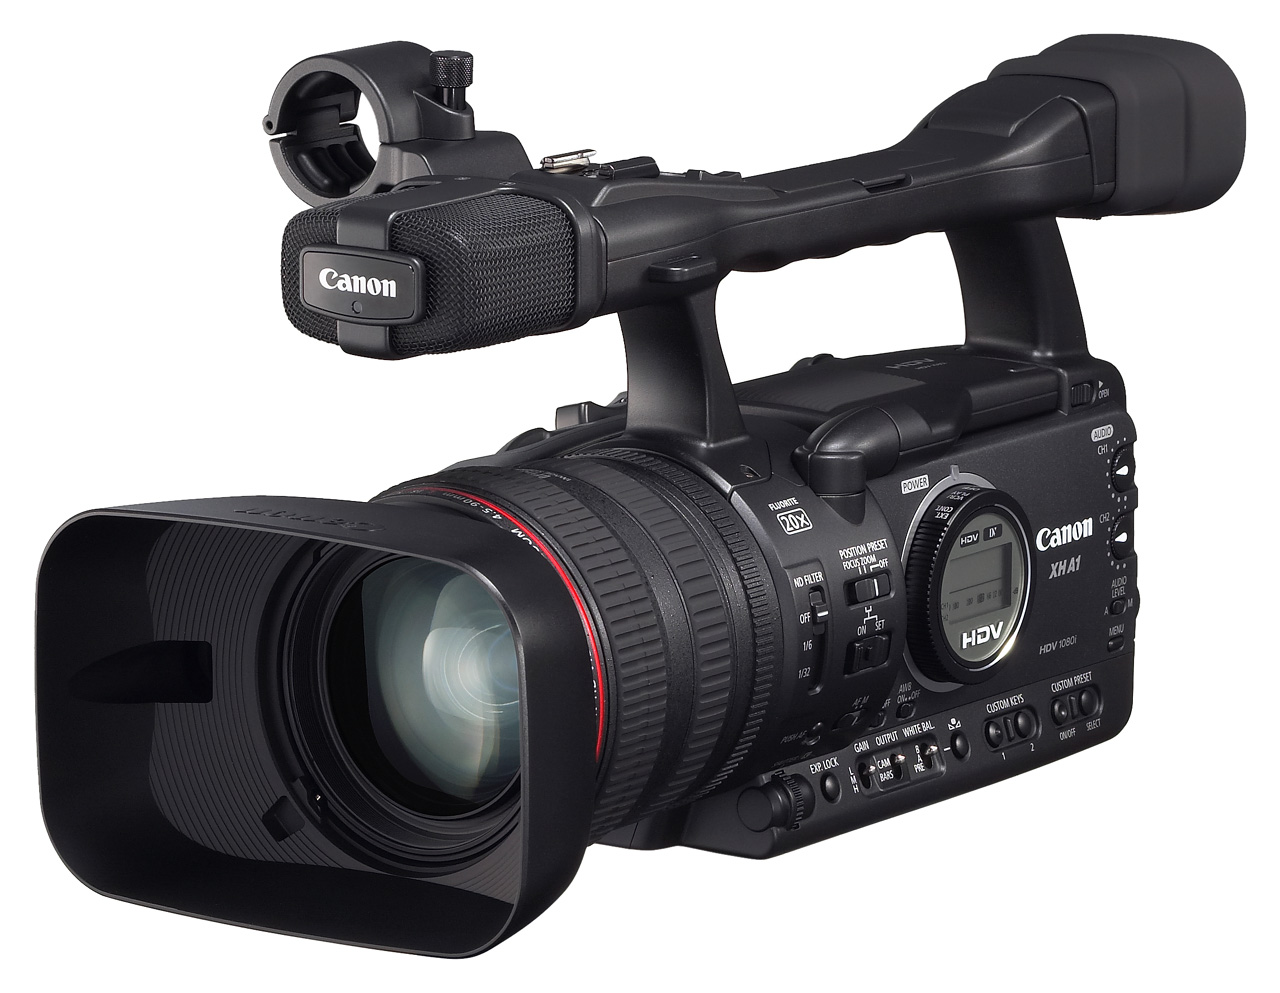 Canon XHA1 HD Video Camera for Sale - $2200 obo | Videomaker.com